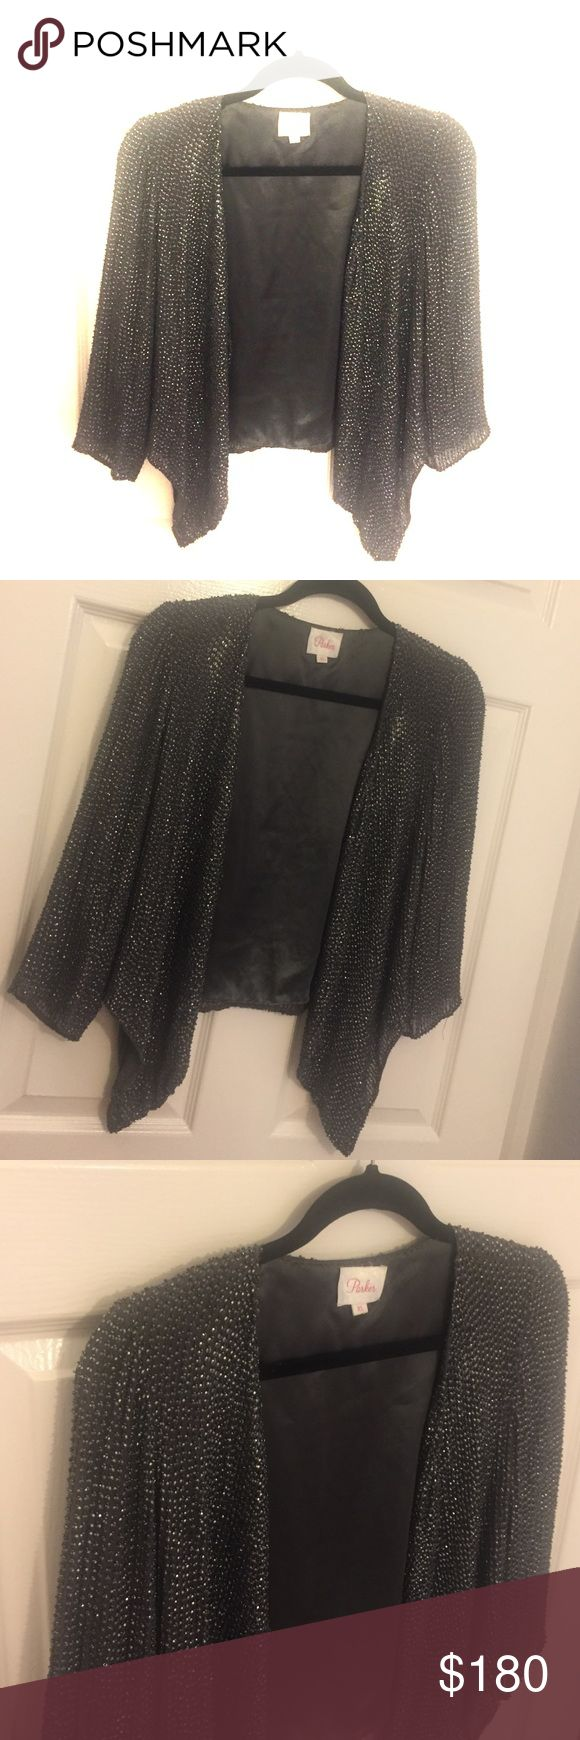 Parker sequin embellished jacket in Charcoal grey Parker sequin embellished jacket size xs Parker Jackets & Coats Blazers